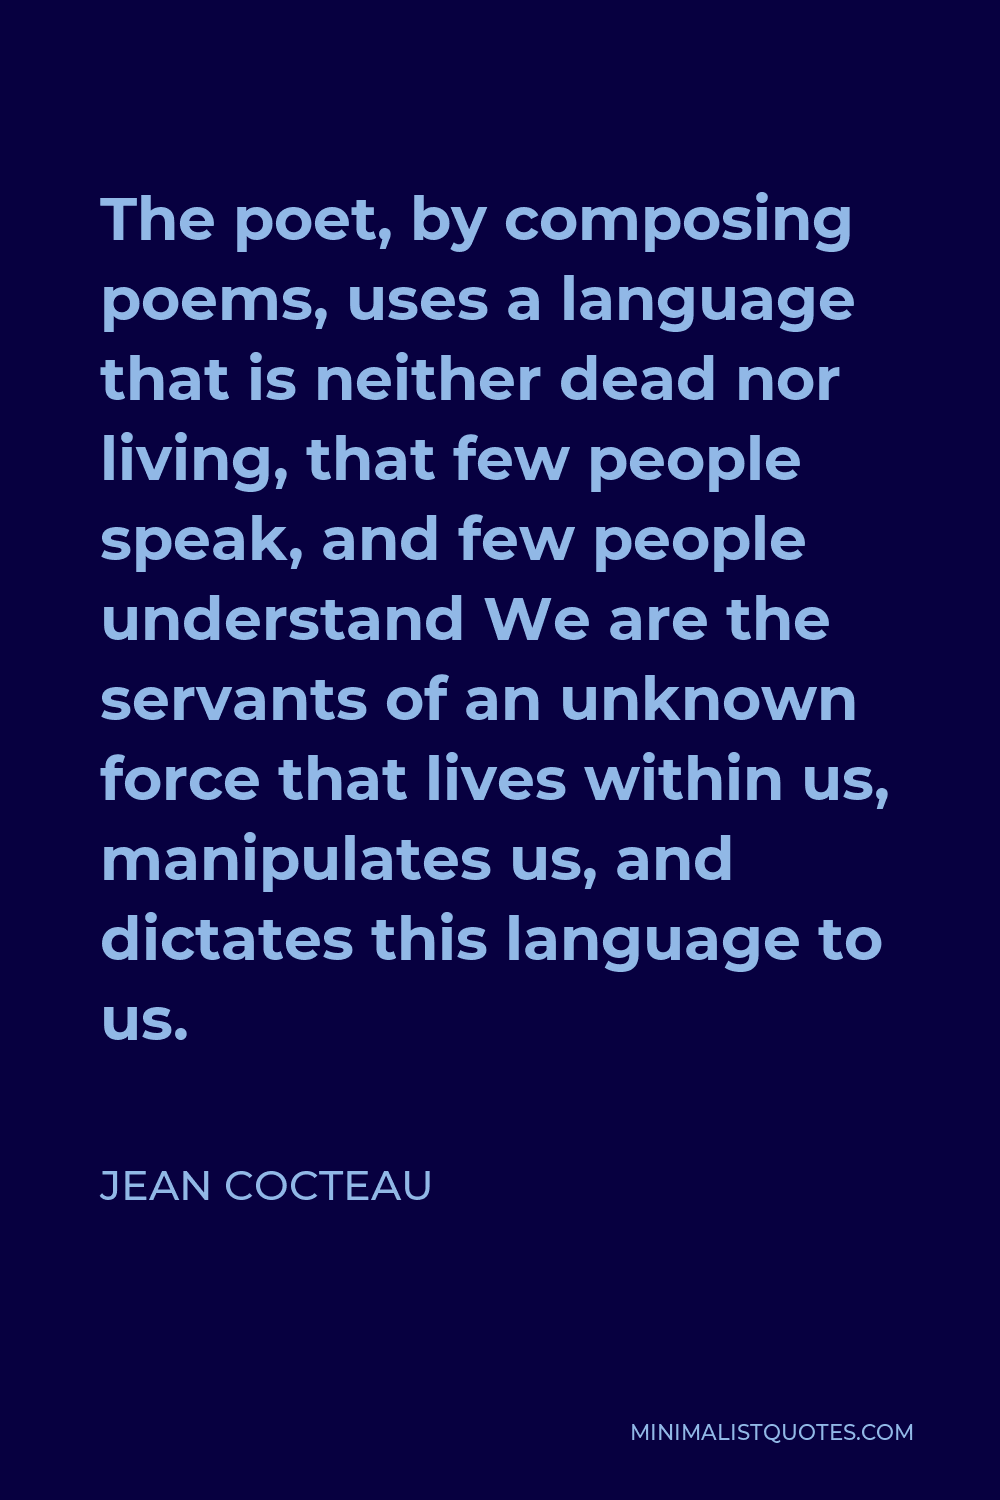 Jean Cocteau Quote - The poet, by composing poems, uses a language that is neither dead nor living, that few people speak, and few people understand We are the servants of an unknown force that lives within us, manipulates us, and dictates this language to us.